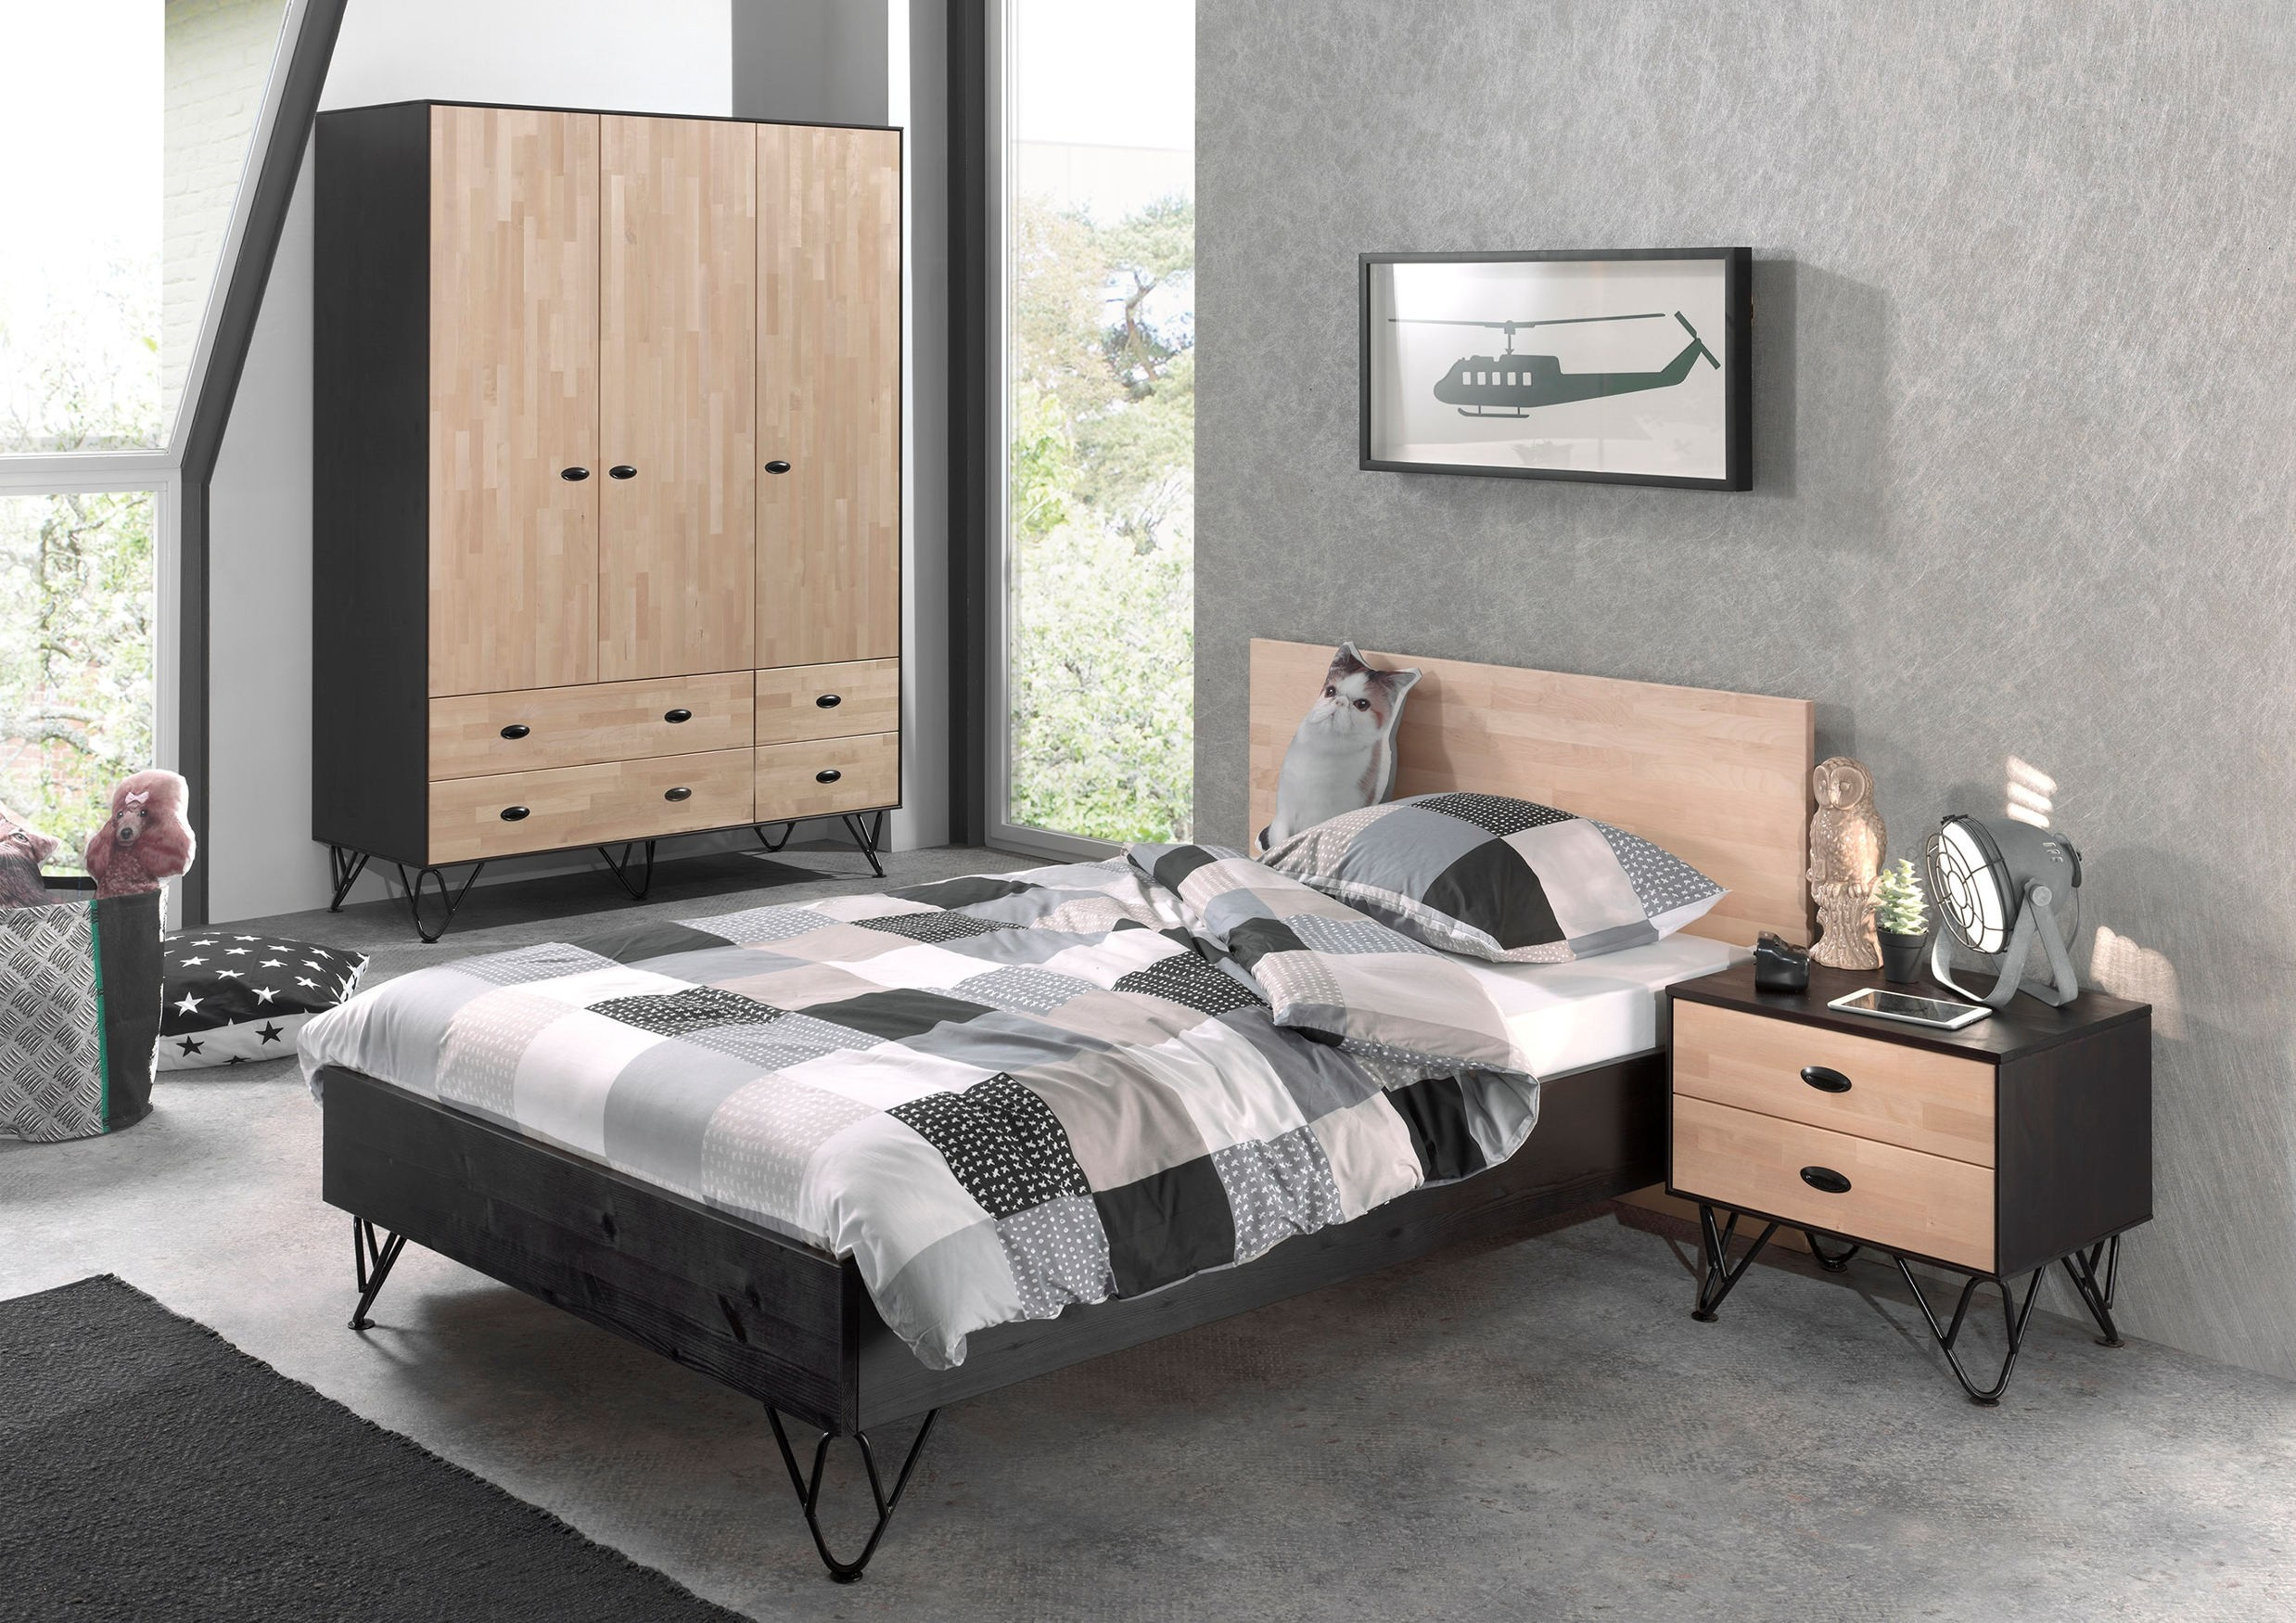 jugendzimmer william bett 120 x 200 cm schrank nachttisch birke natur schwarz kinder. Black Bedroom Furniture Sets. Home Design Ideas